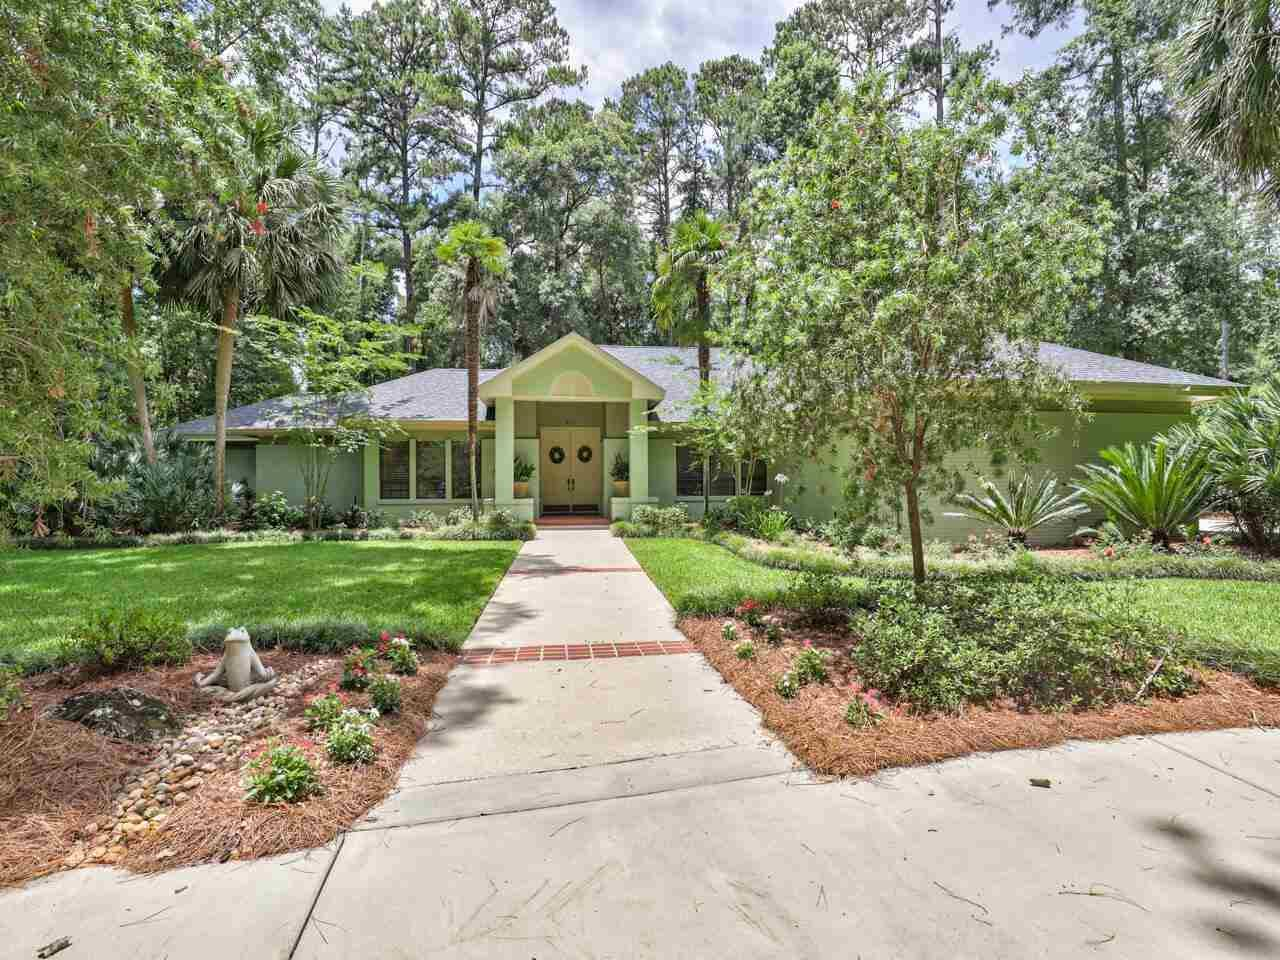 648 Forest Lair, Tallahassee, FL 32312 - MLS#: 333768